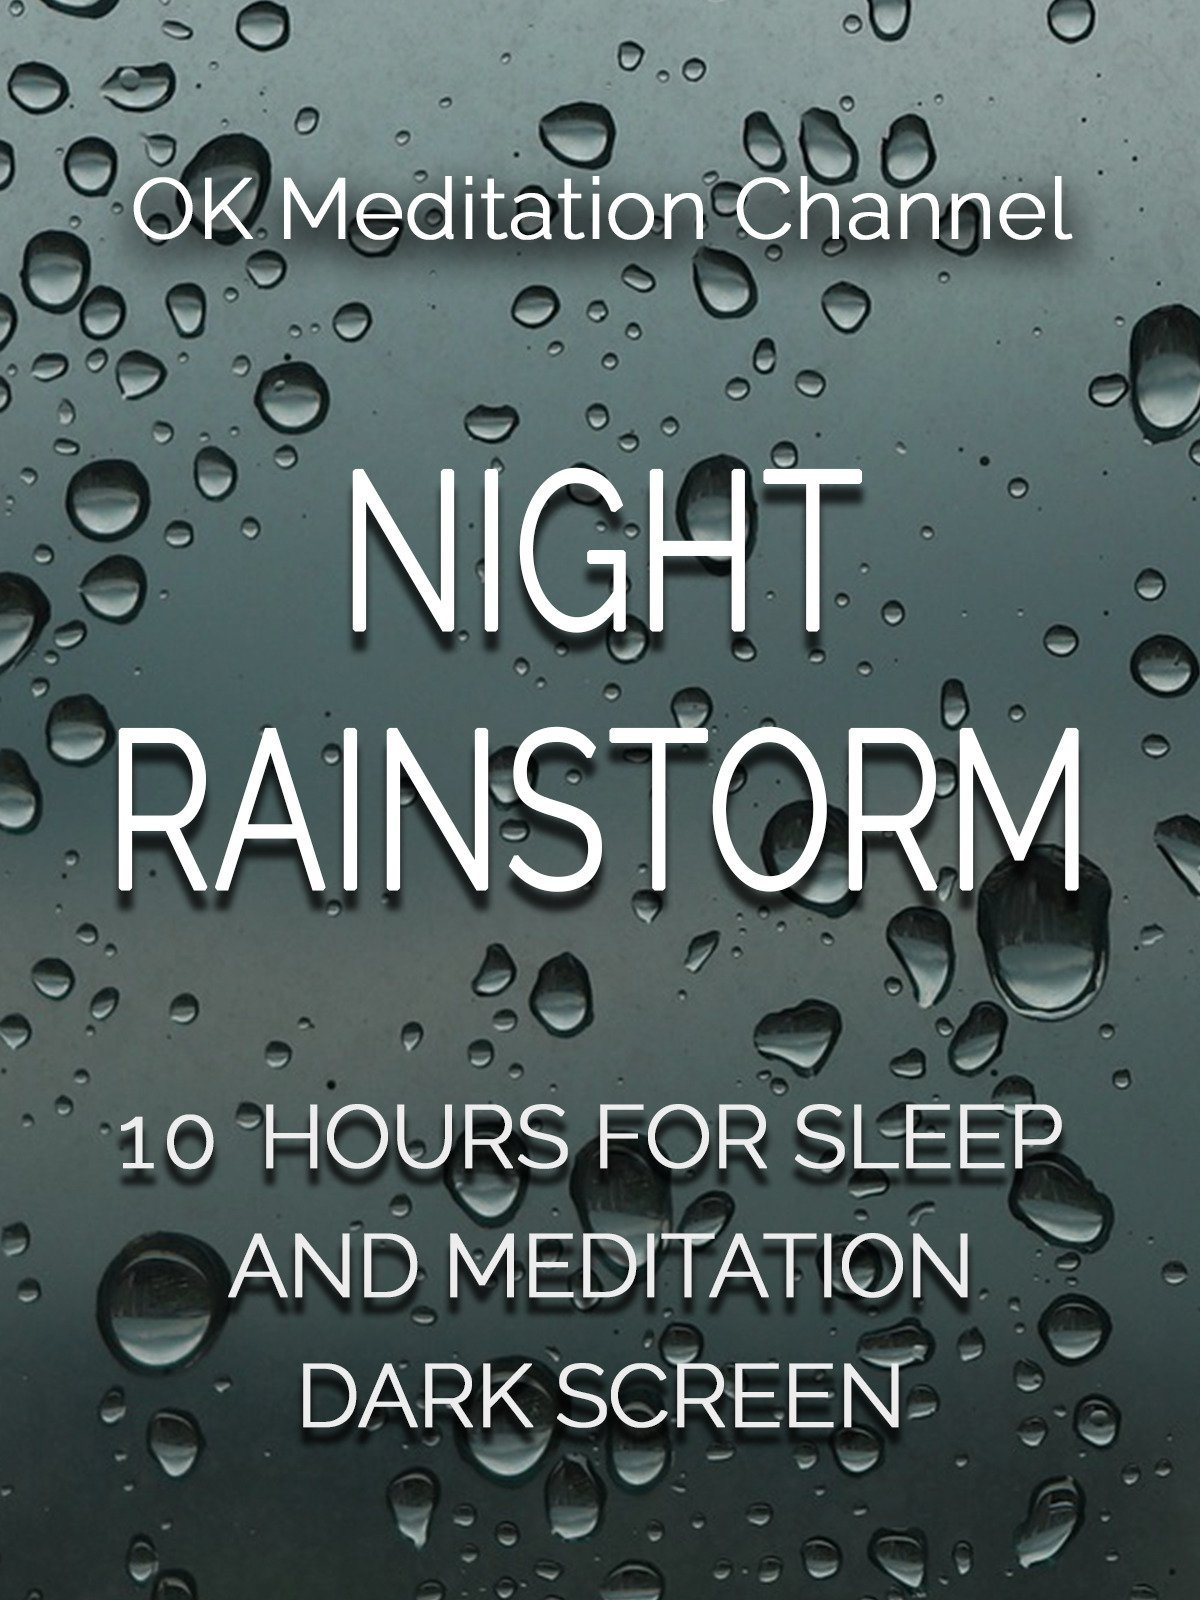 Night rainstorm, 10 hours for sleep and meditation, dark screen on Amazon Prime Instant Video UK